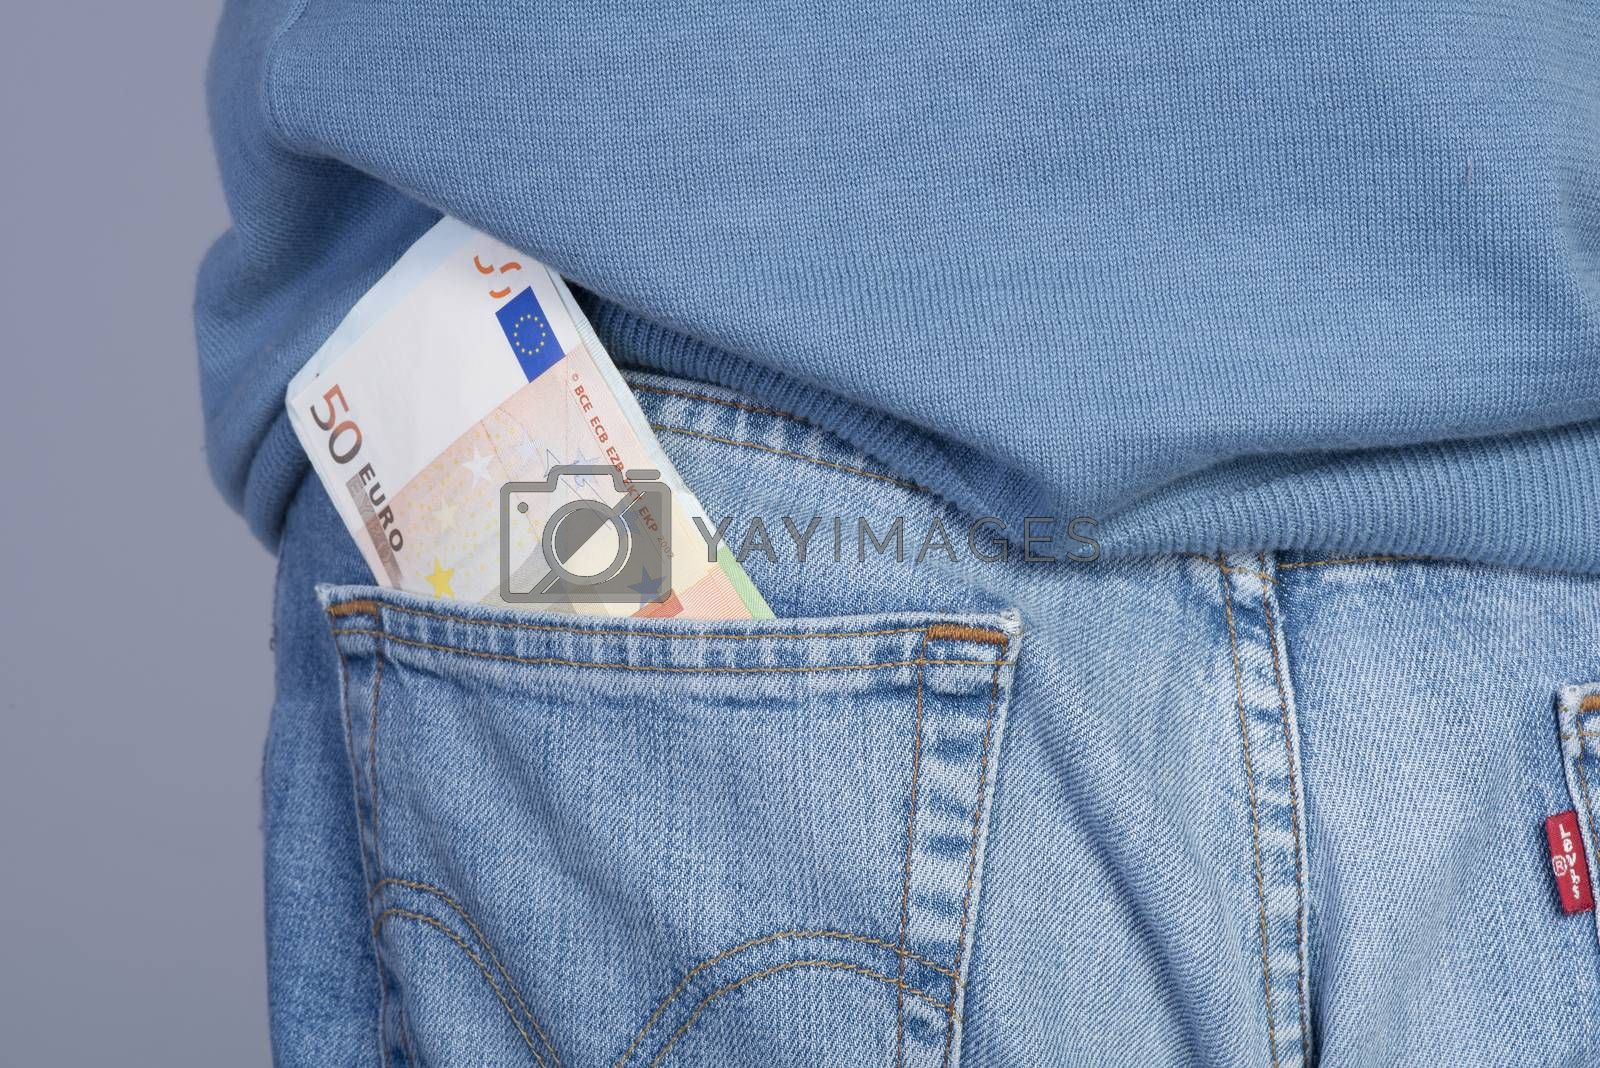 Euro's banknotes by Delle Vedove